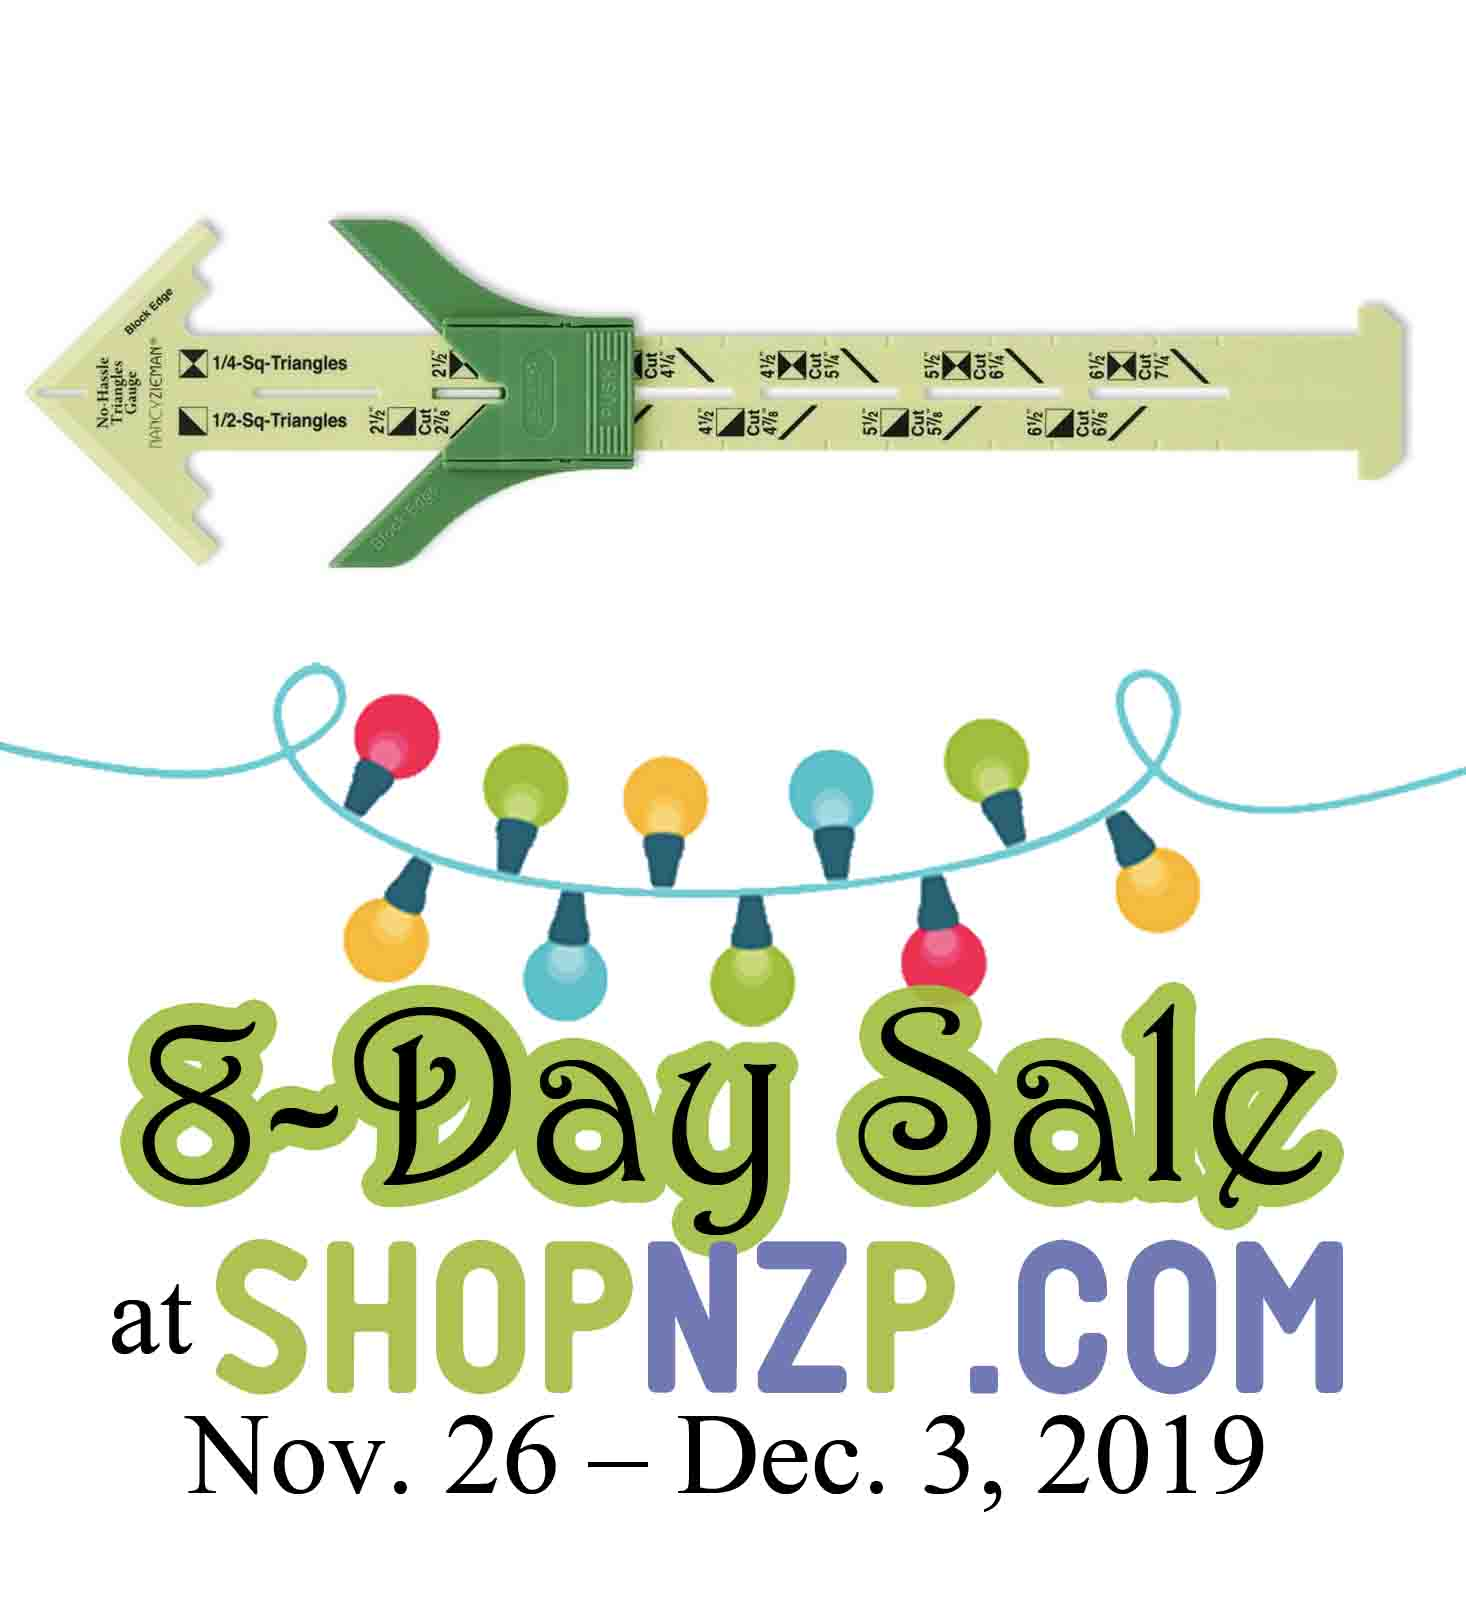 -Day Pre Holidays Sale Nov. 26 through Dec 3, 2019 at shopnzp.com